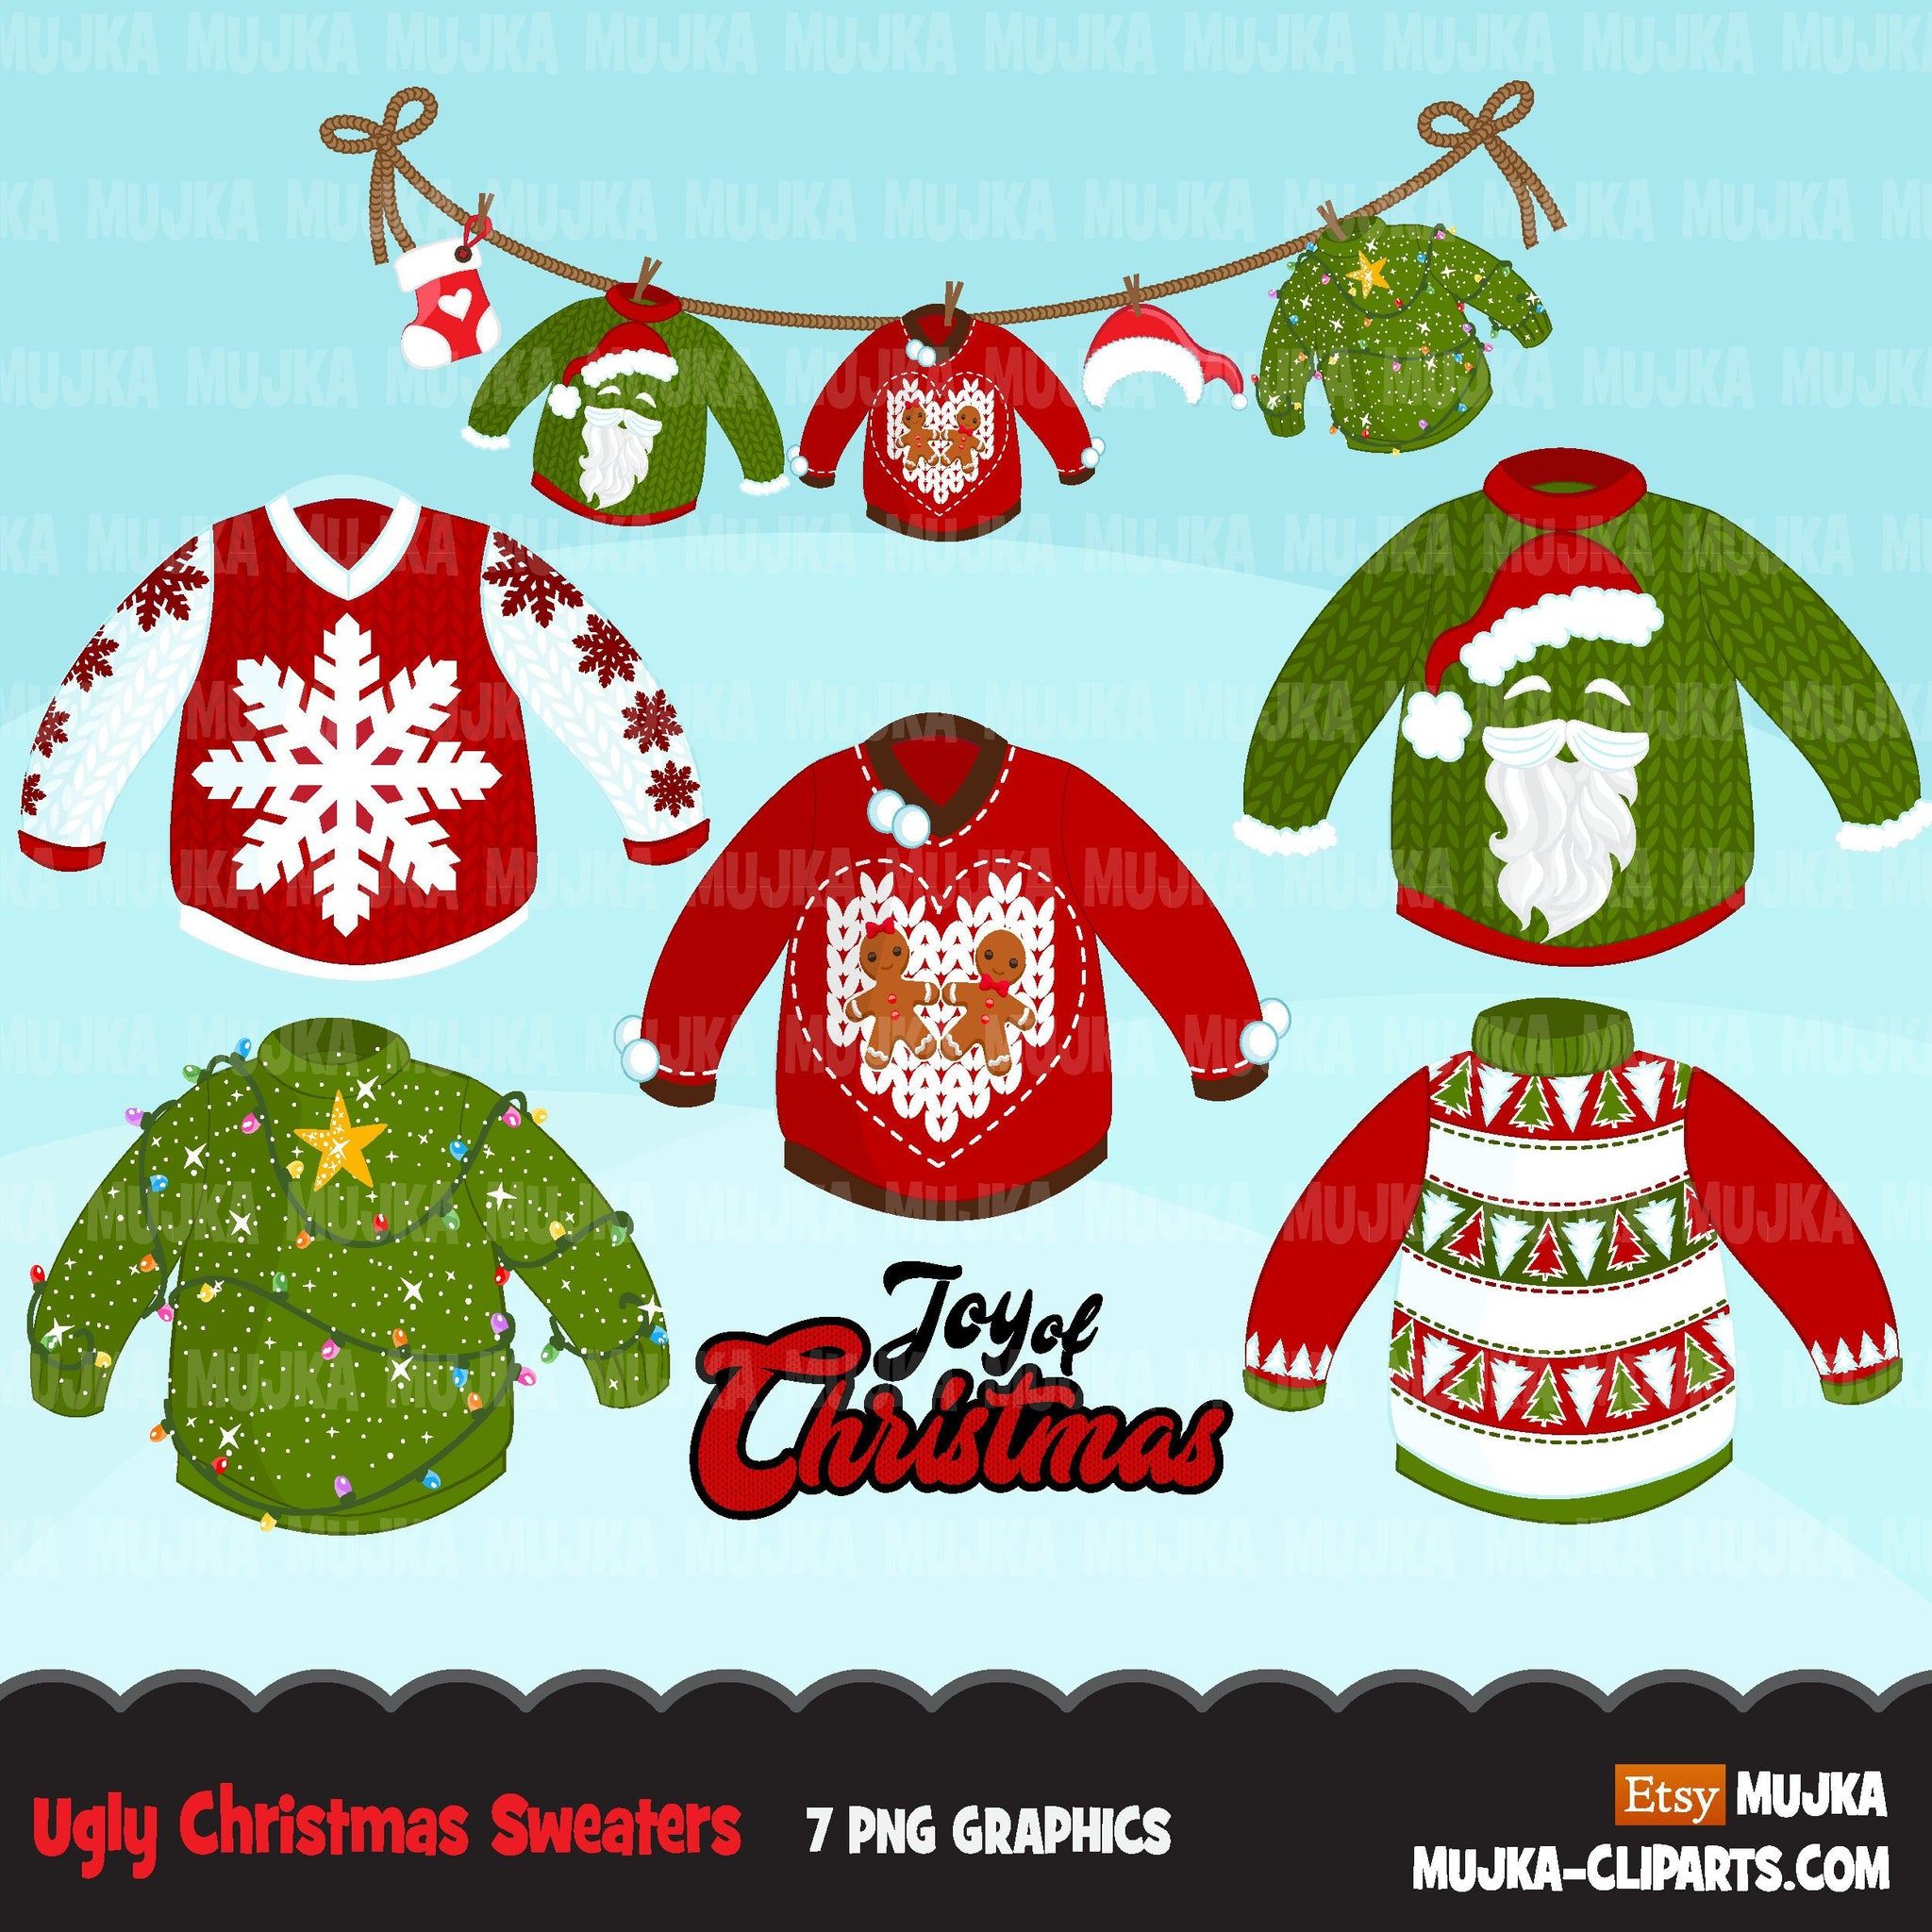 Ugly Christmas Sweaters Clipart, Joy of Chrismas clothesline , noel cardigan graphics